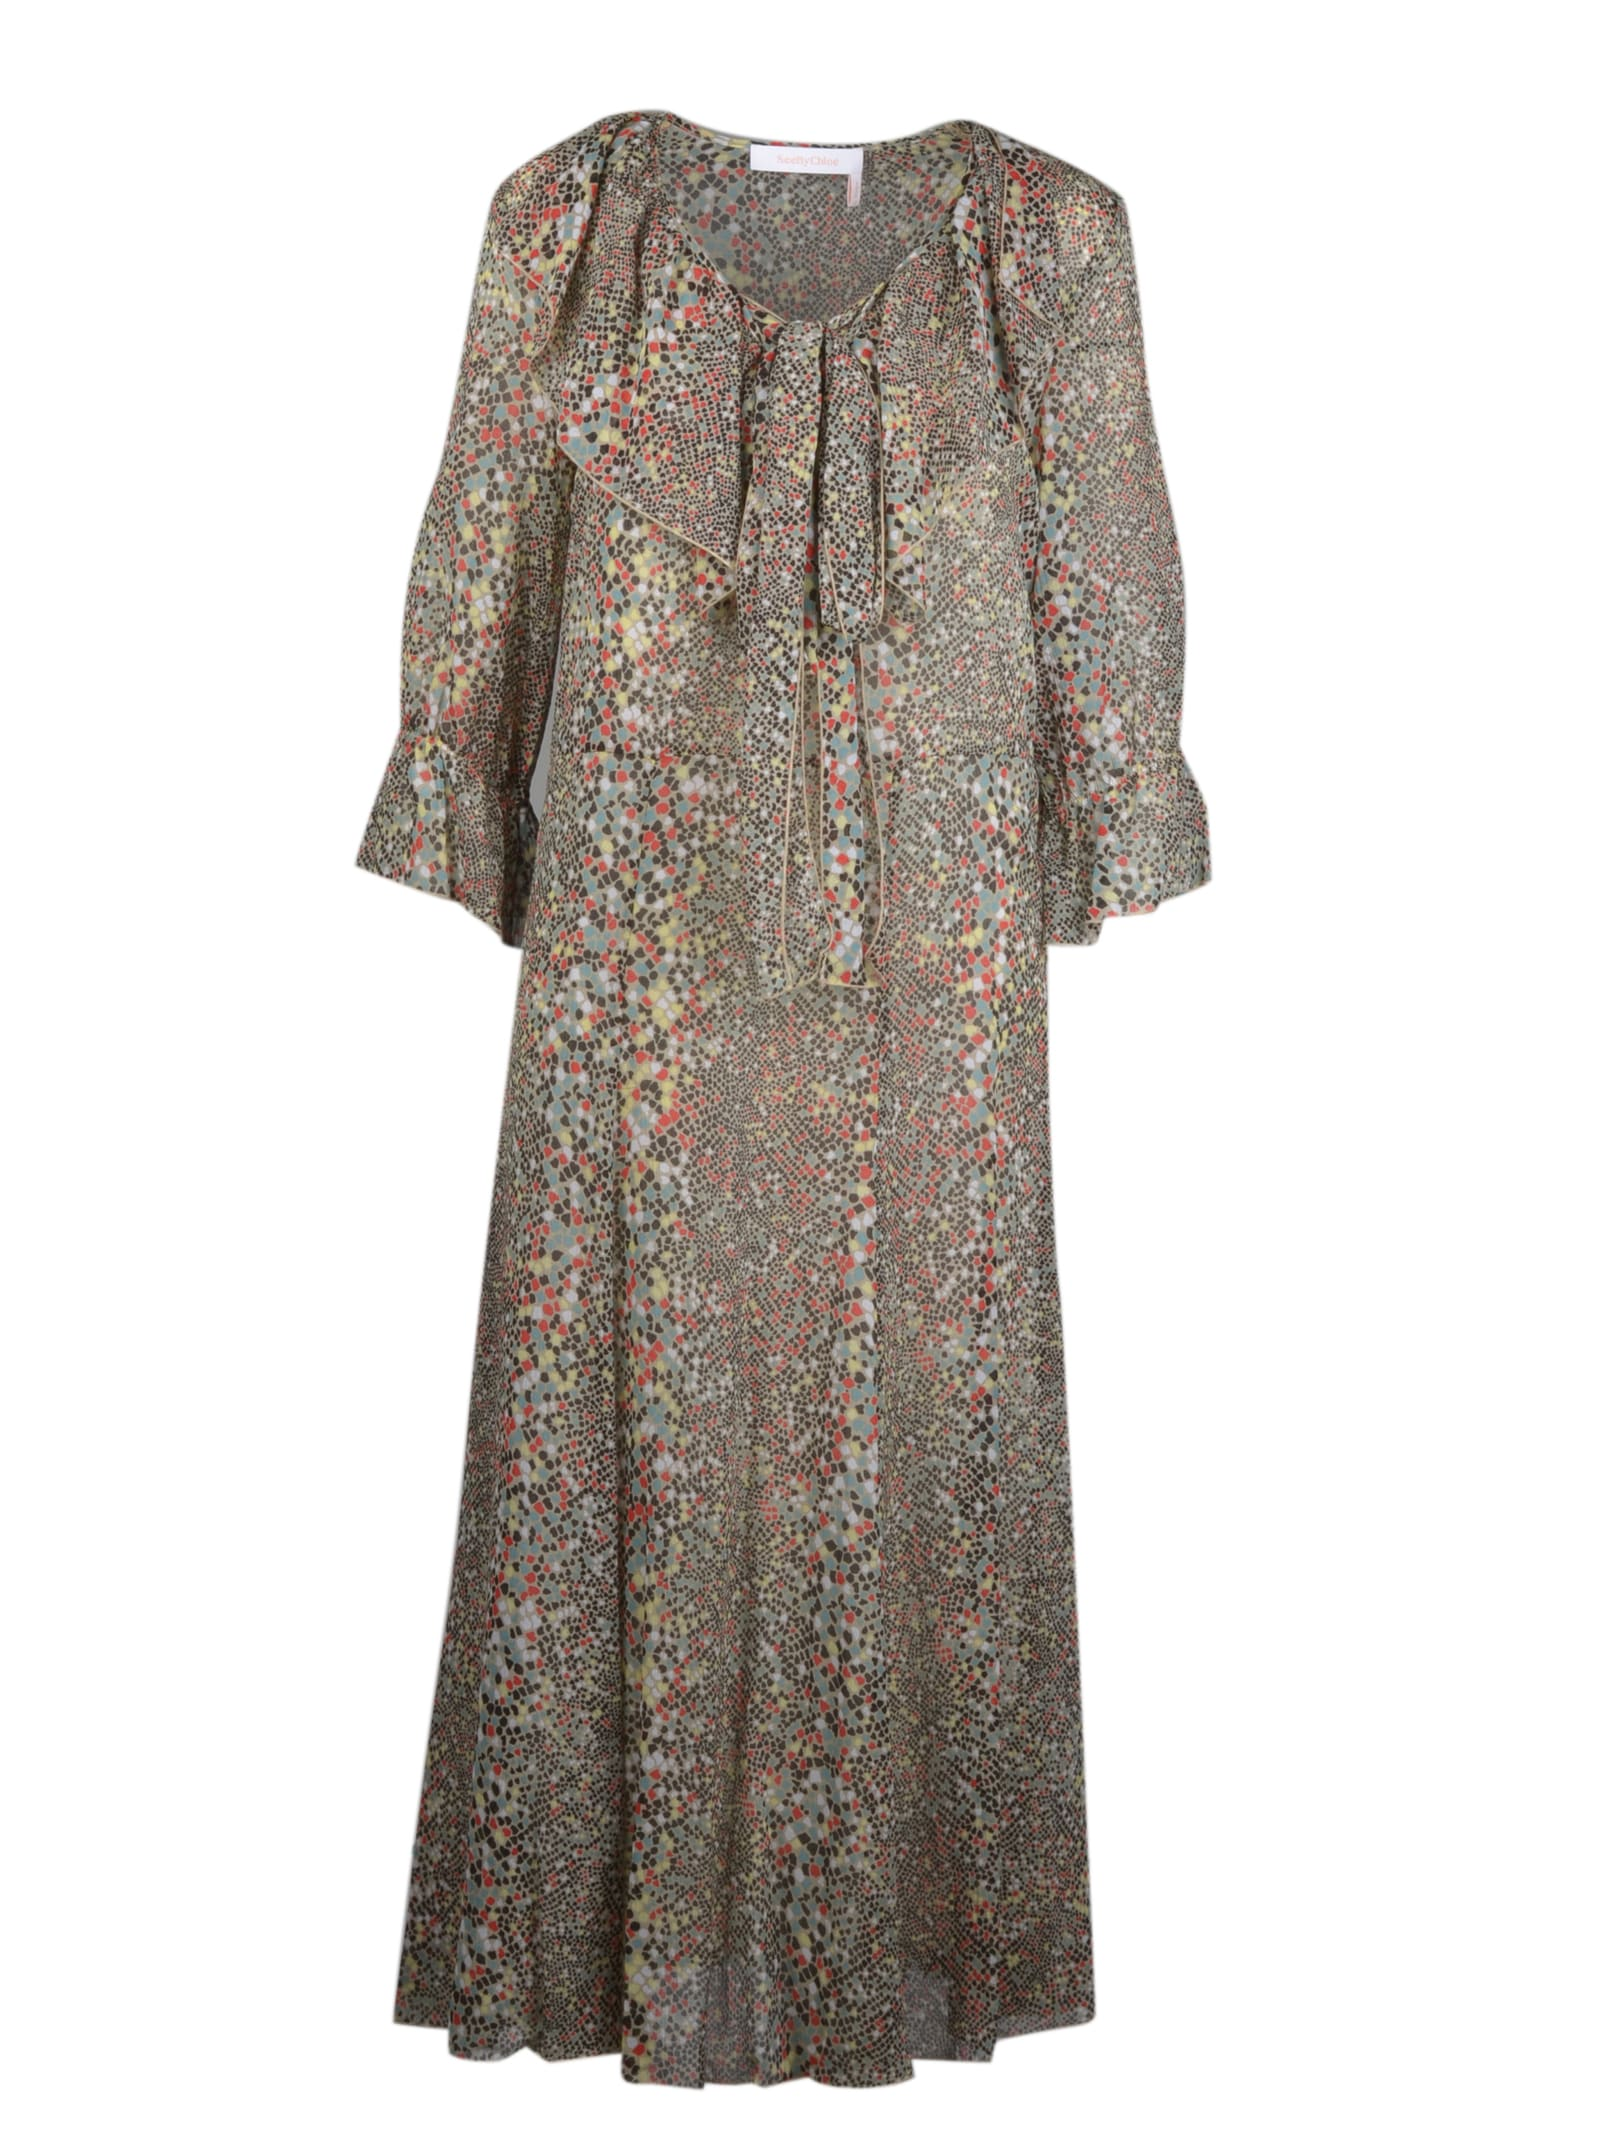 Buy See by Chloé Printed Midi Dress online, shop See by Chloé with free shipping